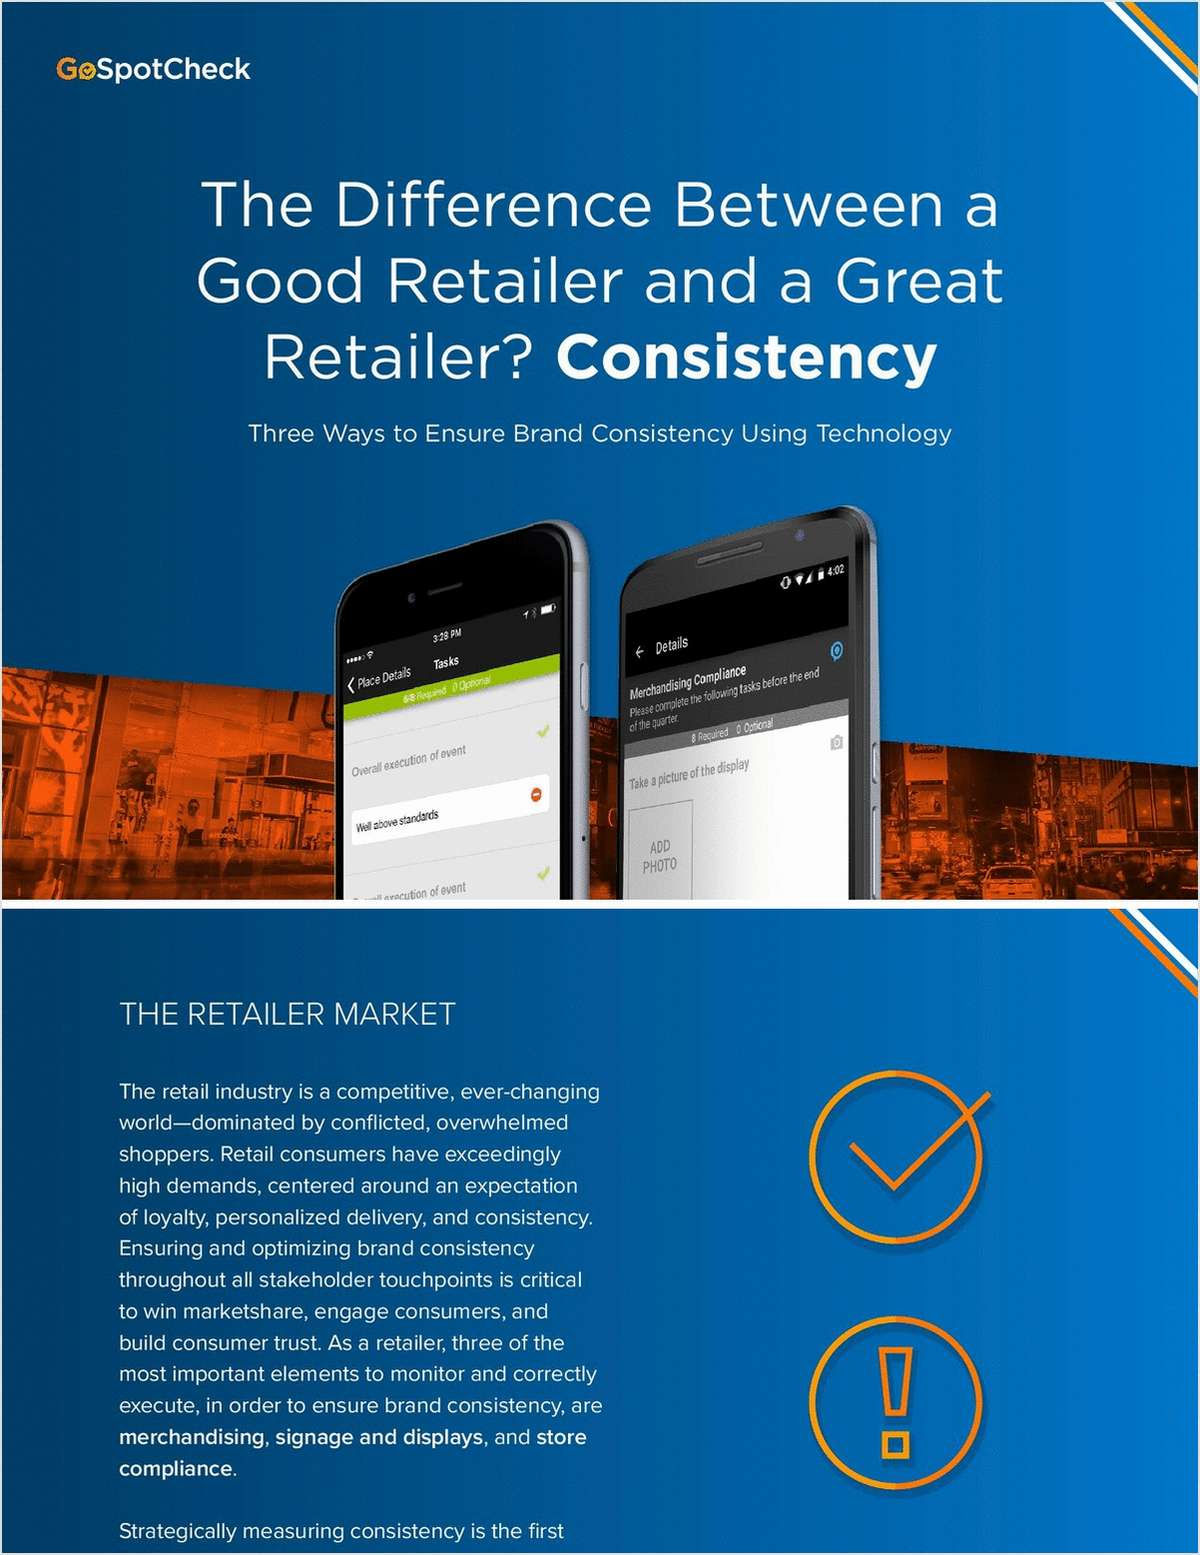 The Difference Between a Good Retailer and a Great Retailer? Consistency